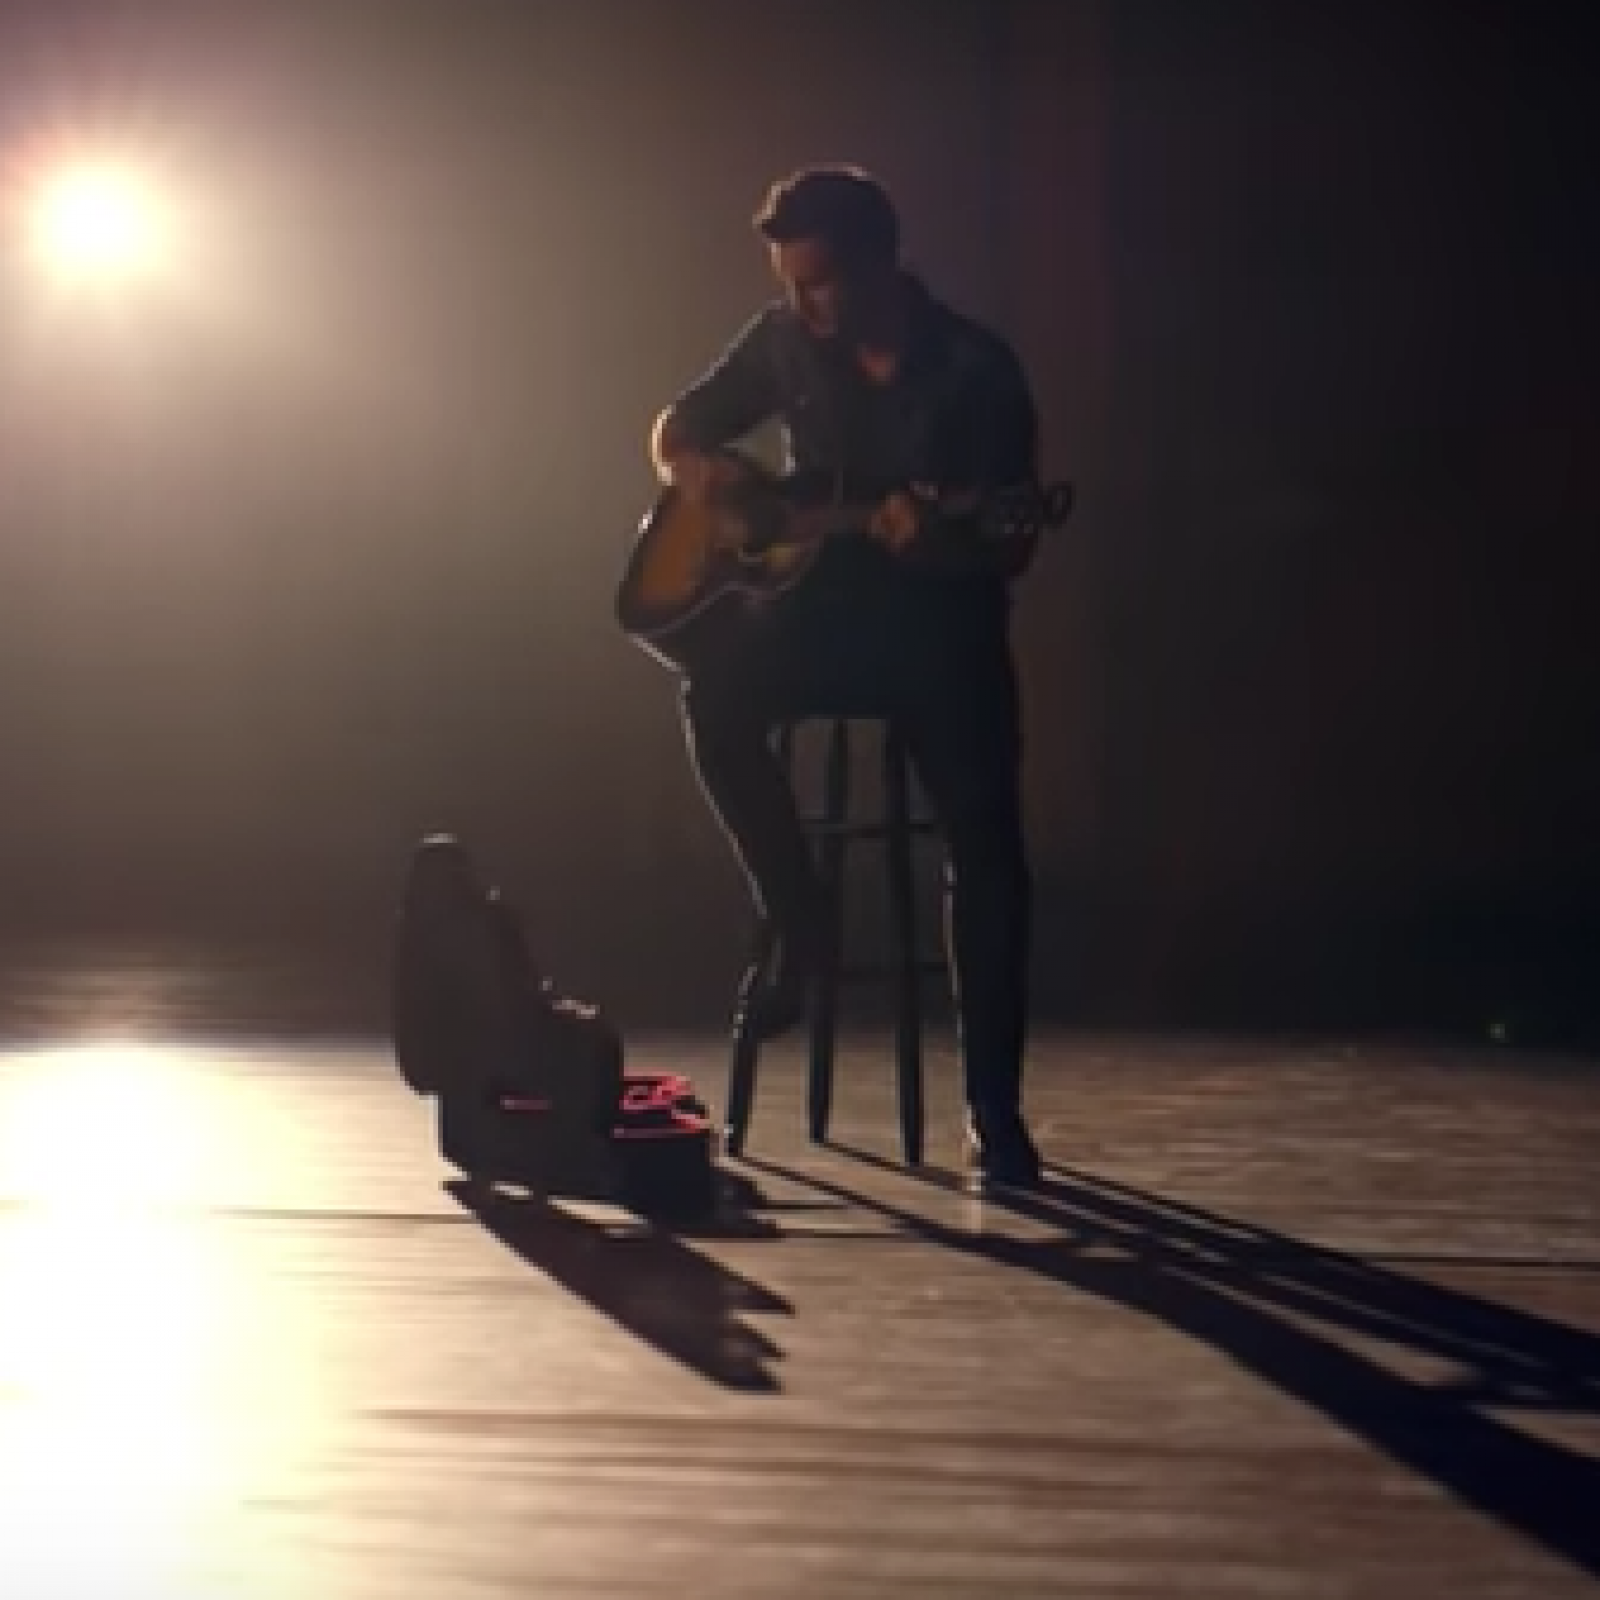 Luke Releases Personal New Music Video for